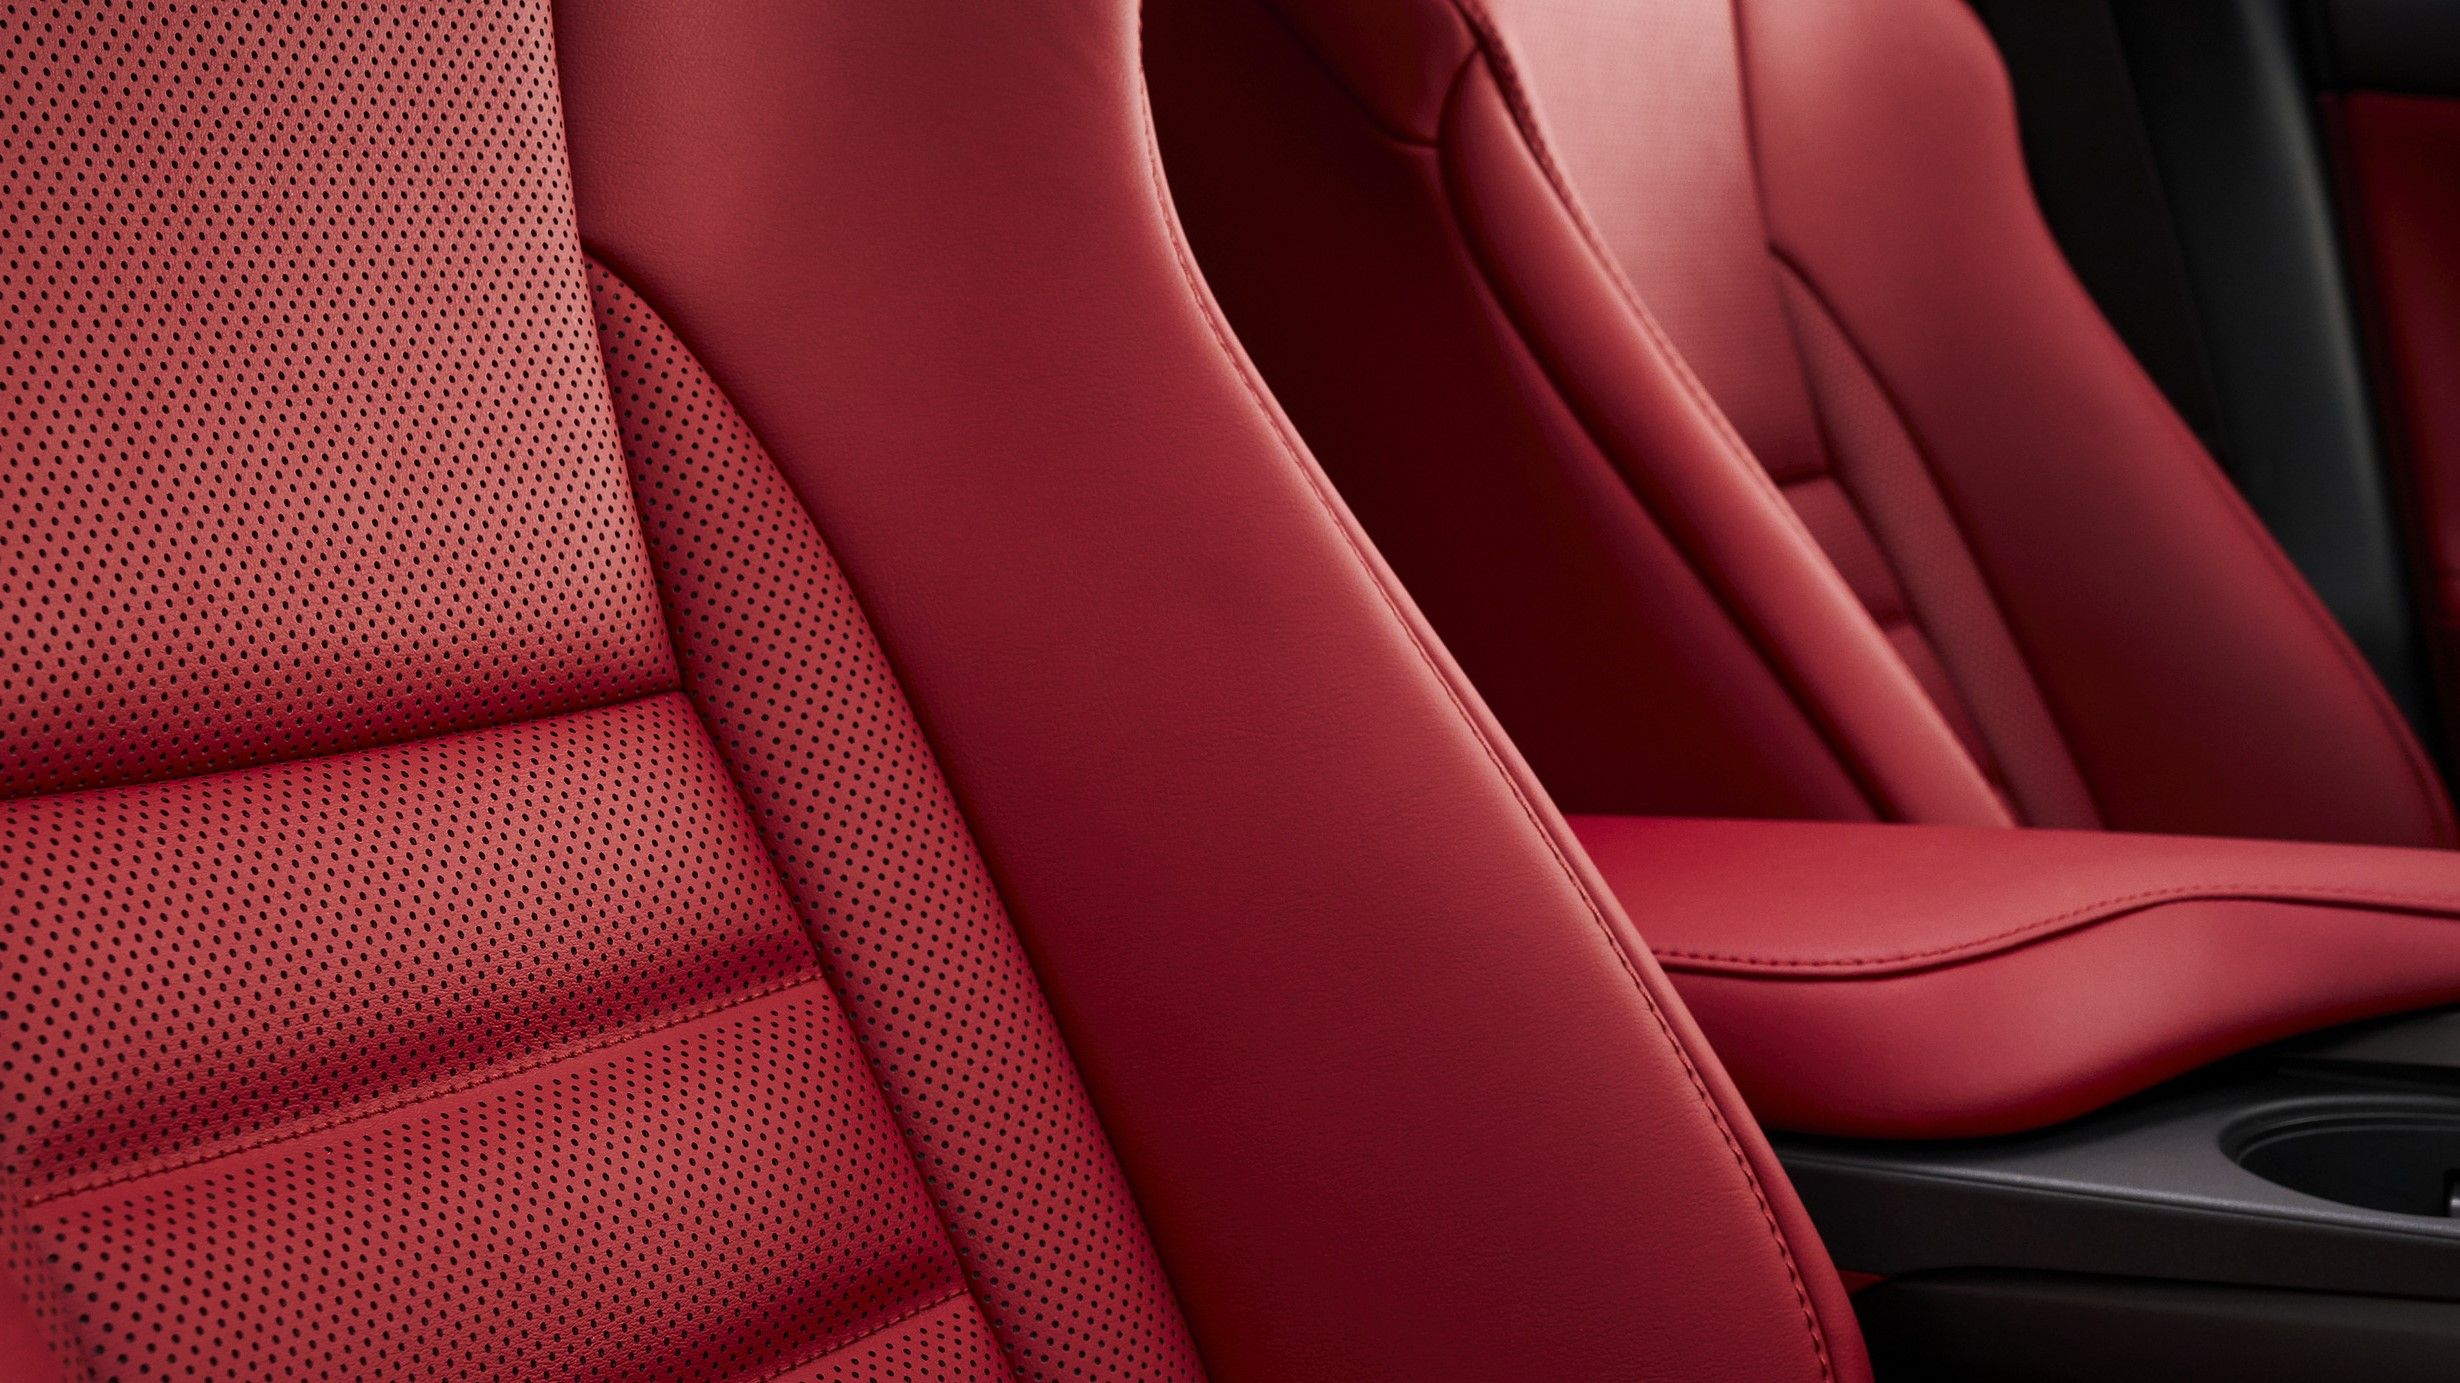 2021 lexus is 350 f sport interior perforated leather